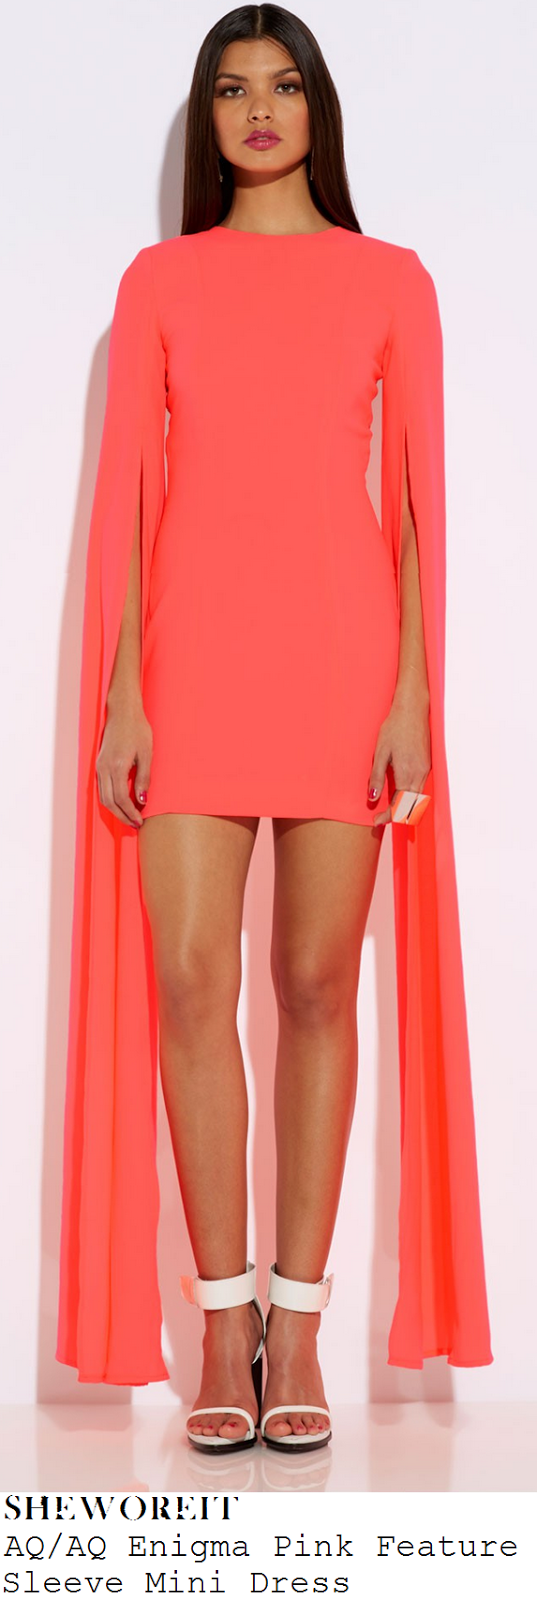 sam-faiers-neon-coral-pink-orange-shift-mini-dress-with-long-maxi-semi-sheer-split-sleeve-detail-celebrity-big-brother